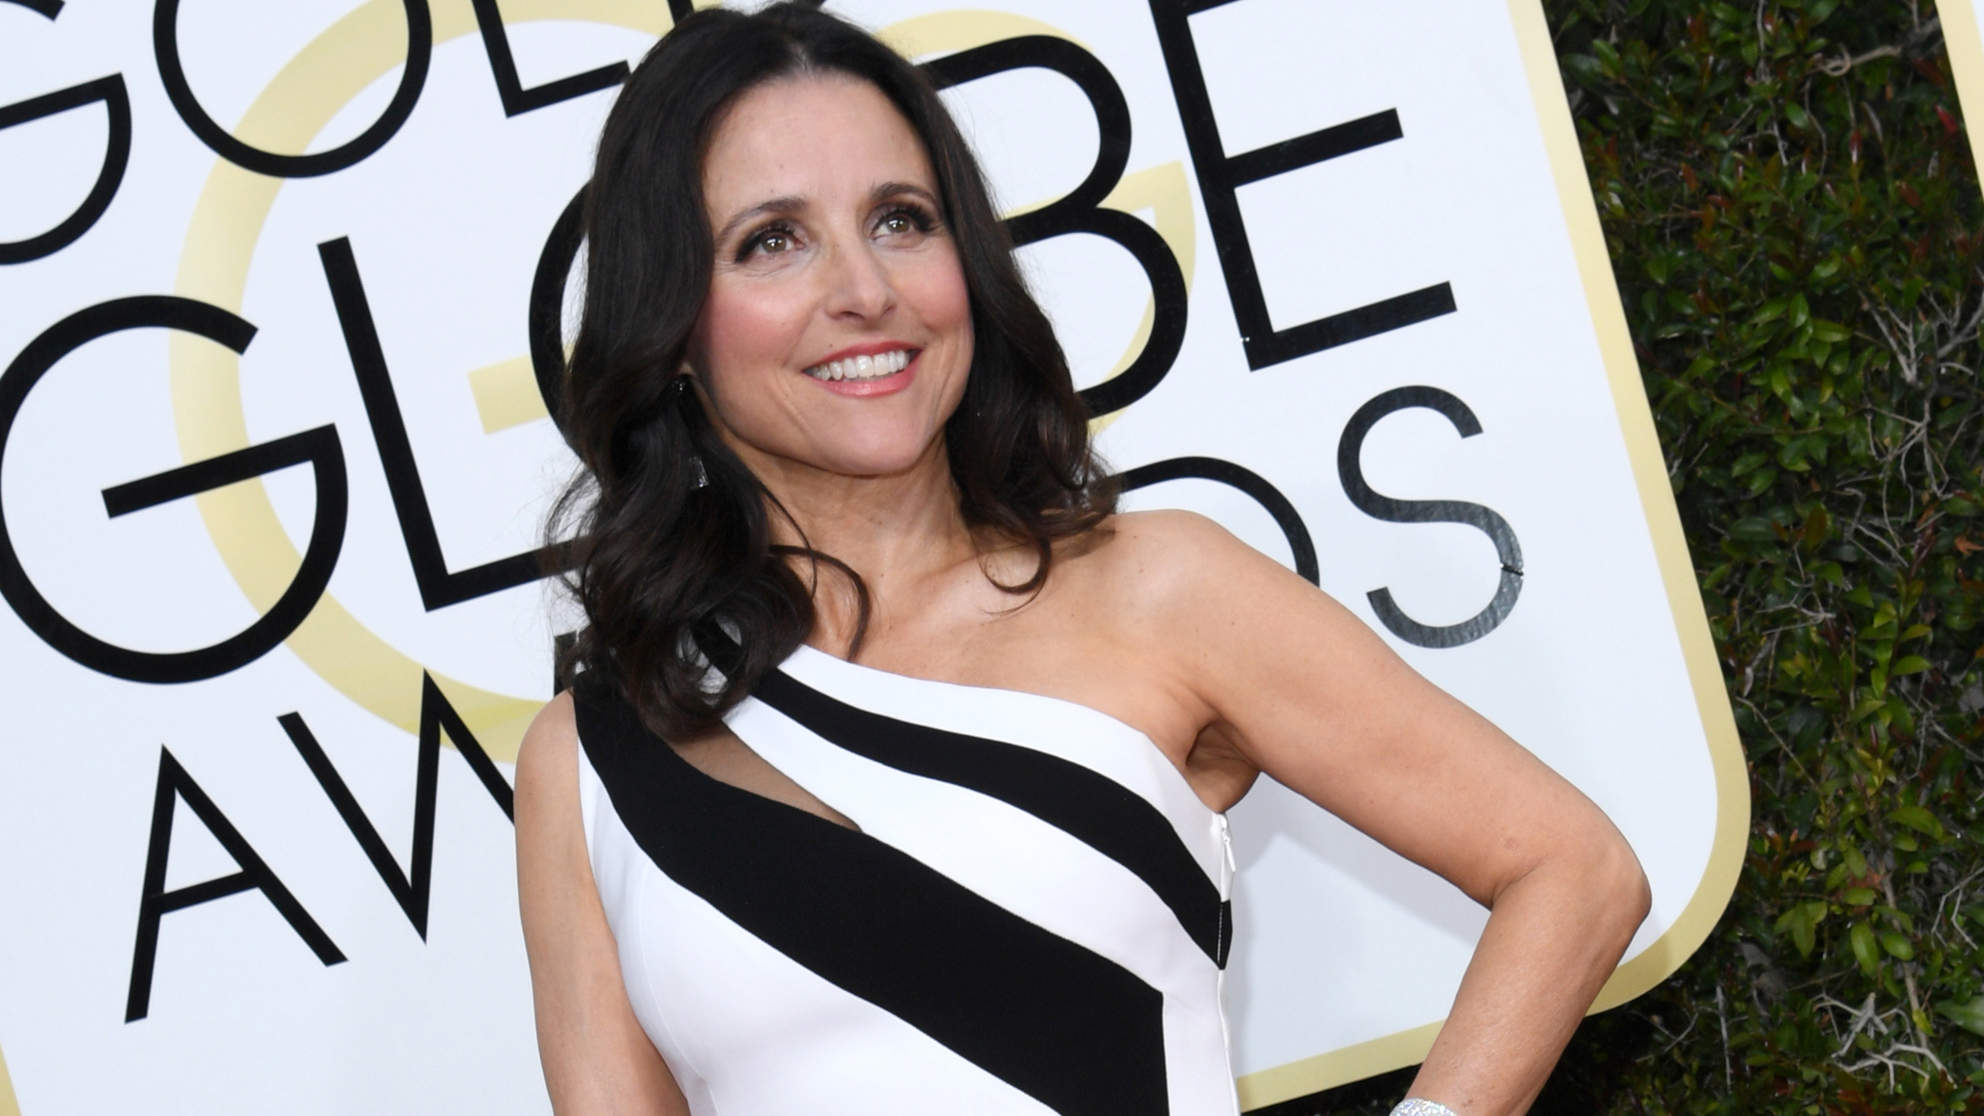 Julia Louis-Dreyfus Says Veep Cast and Crew Are a 'Huge Comfort and Joy' After Cancer Diagnosis